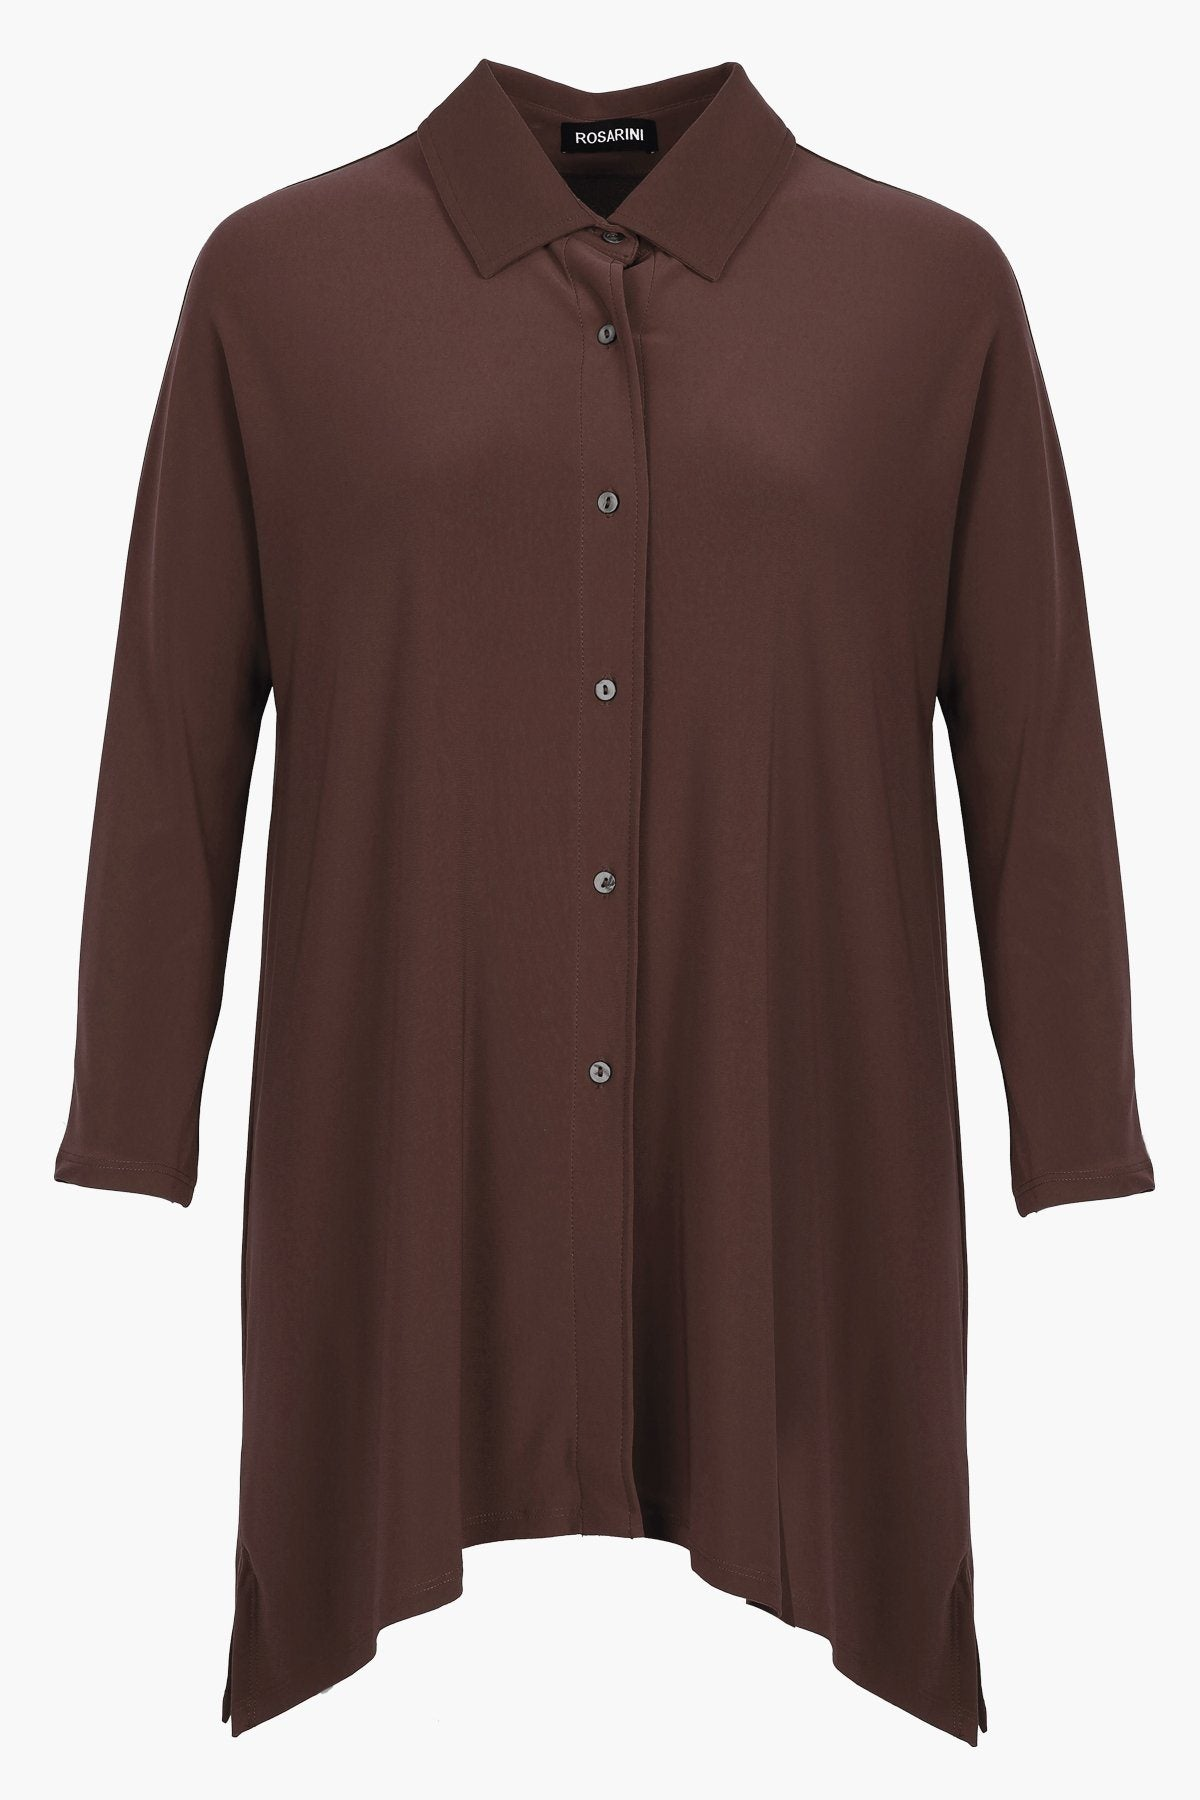 Button Shirt with Curved Hem taupe